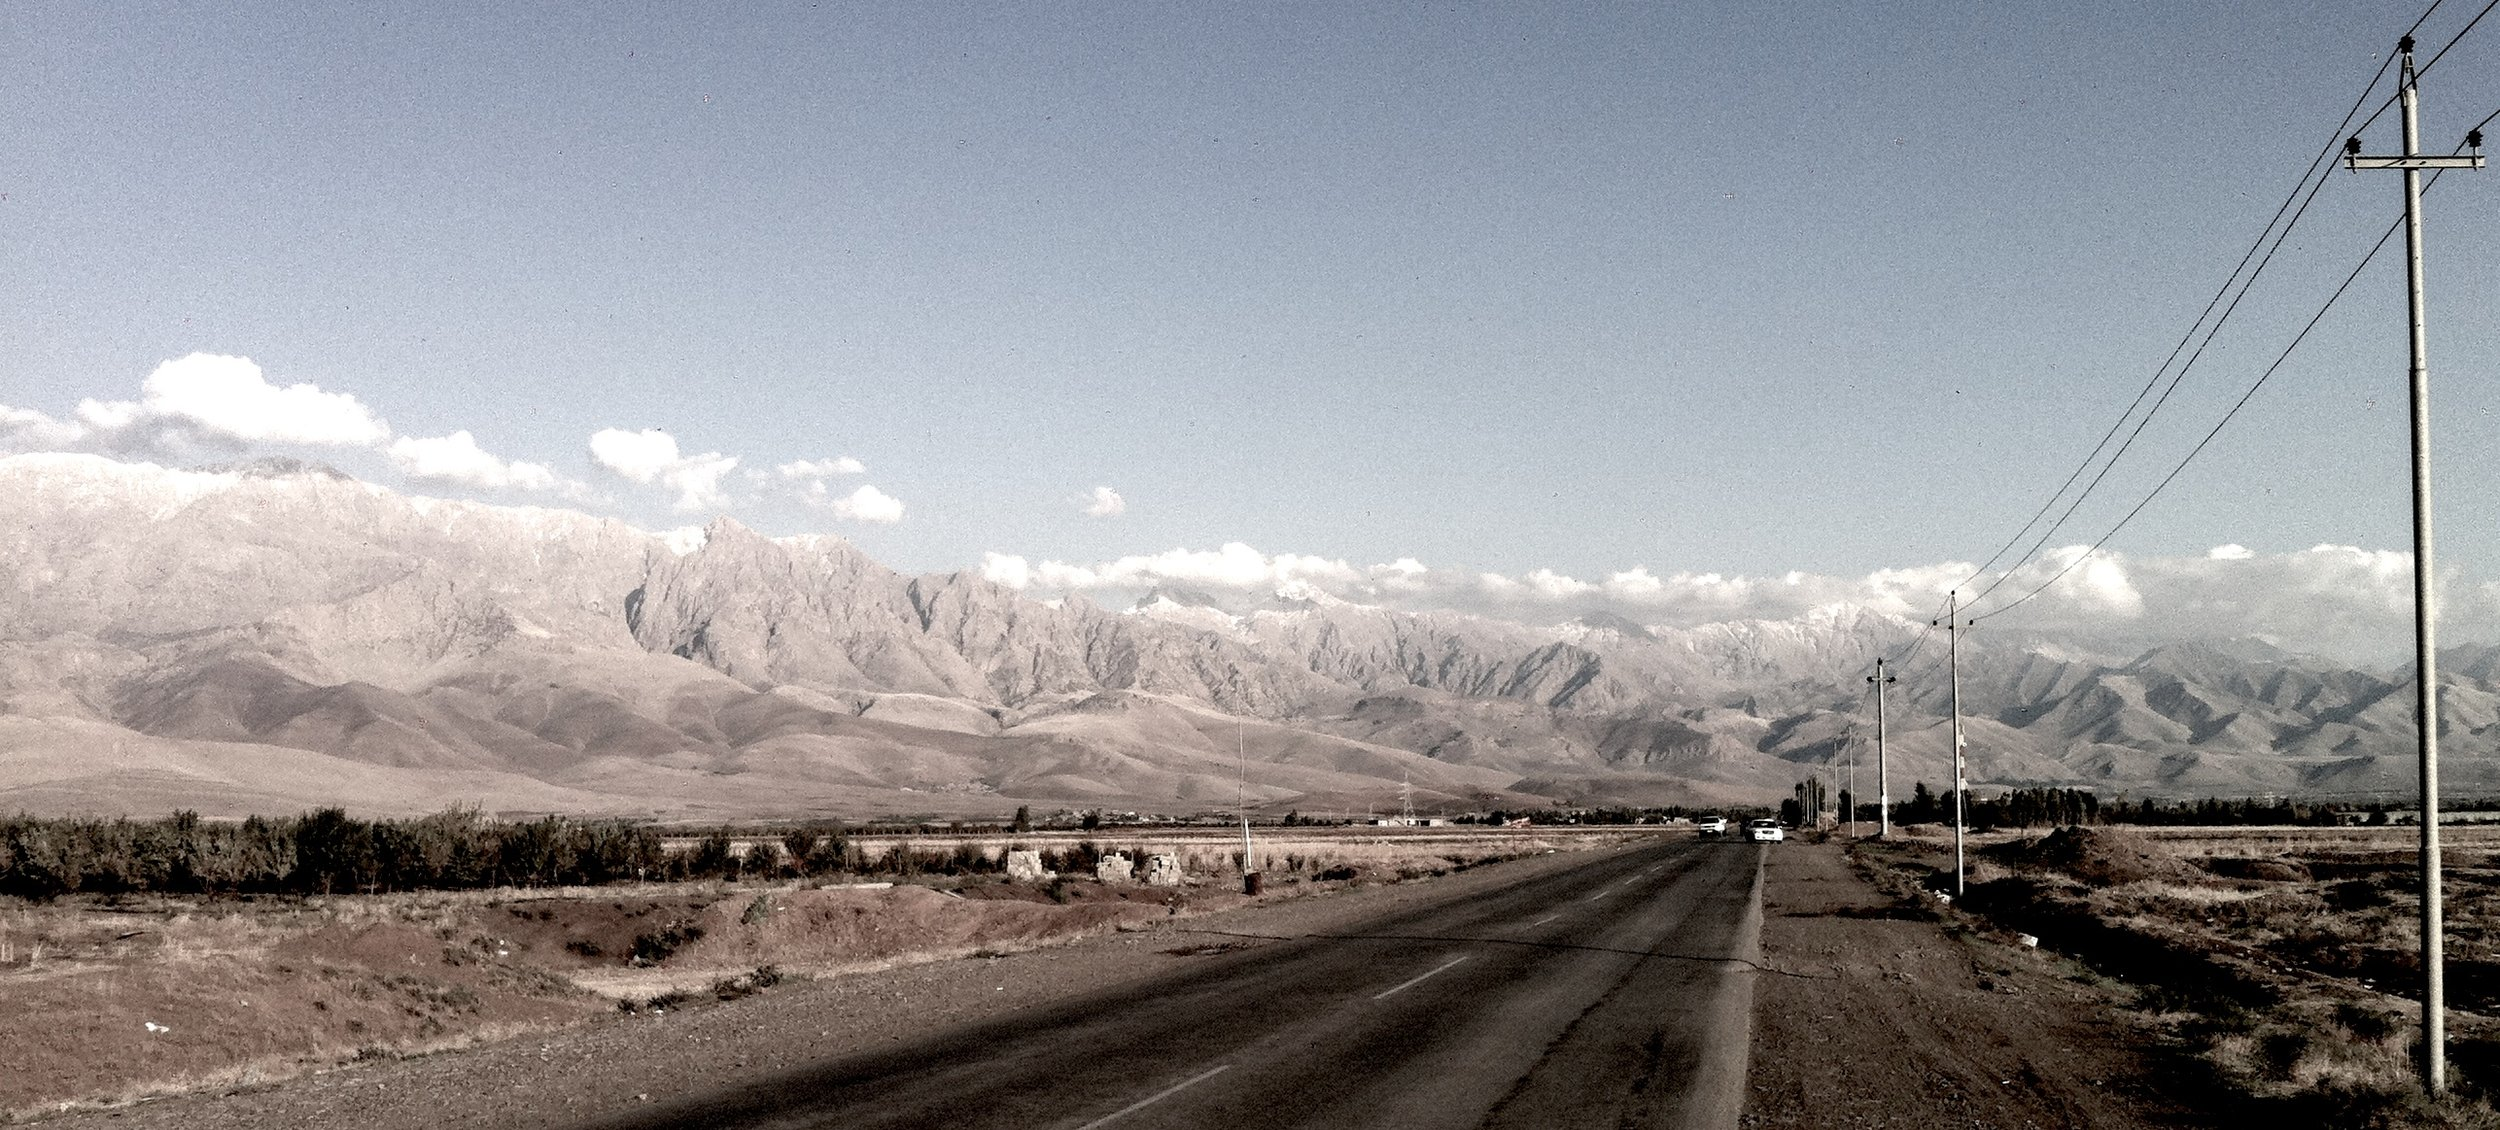 Copy of Zagros Mountains, Iran/Iraq Border